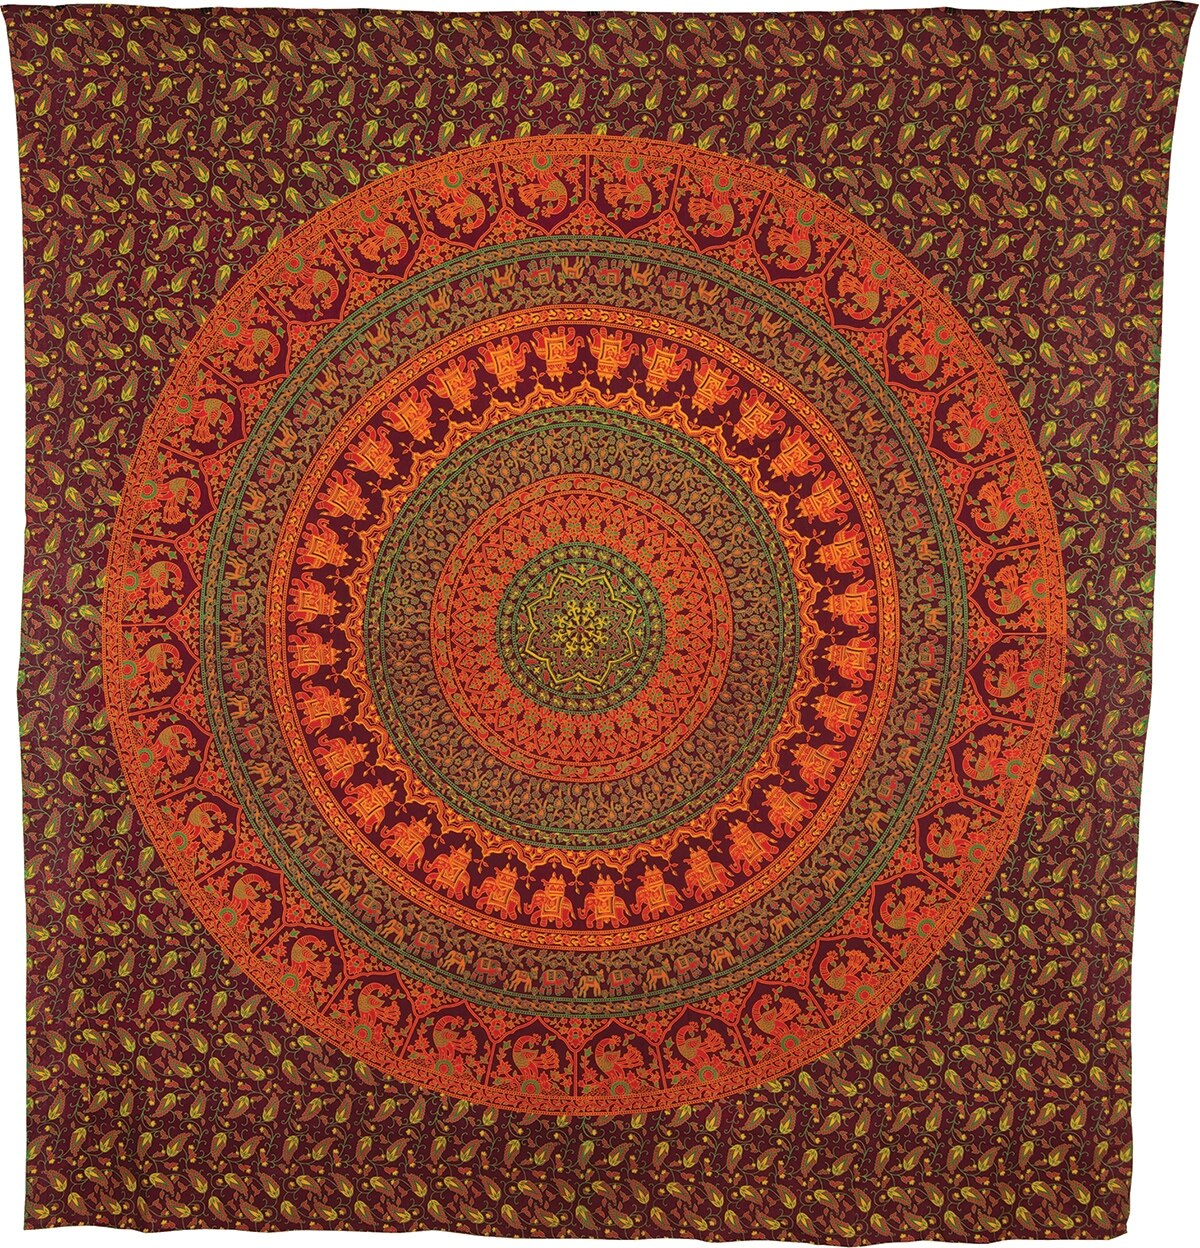 CLOSEOUT Devi Large Mandala Tapestry - (Large, 7 X 8 Feet, 100% Cotton, Fair Trade Certified) - Luna Bazaar | Boho & Vintage Style Decor